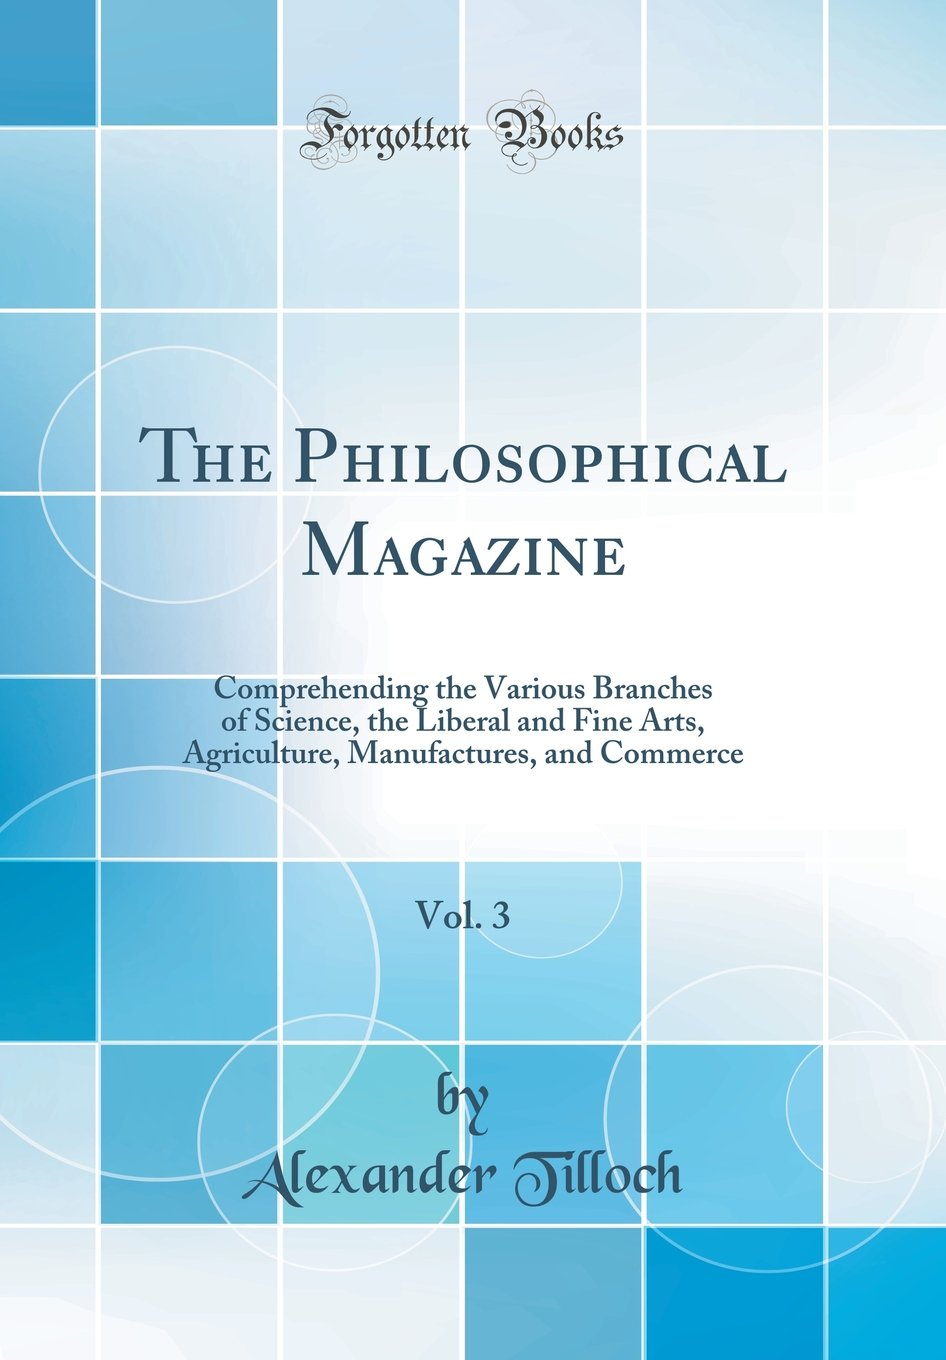 Download The Philosophical Magazine, Vol. 3: Comprehending the Various Branches of Science, the Liberal and Fine Arts, Agriculture, Manufactures, and Commerce (Classic Reprint) ebook